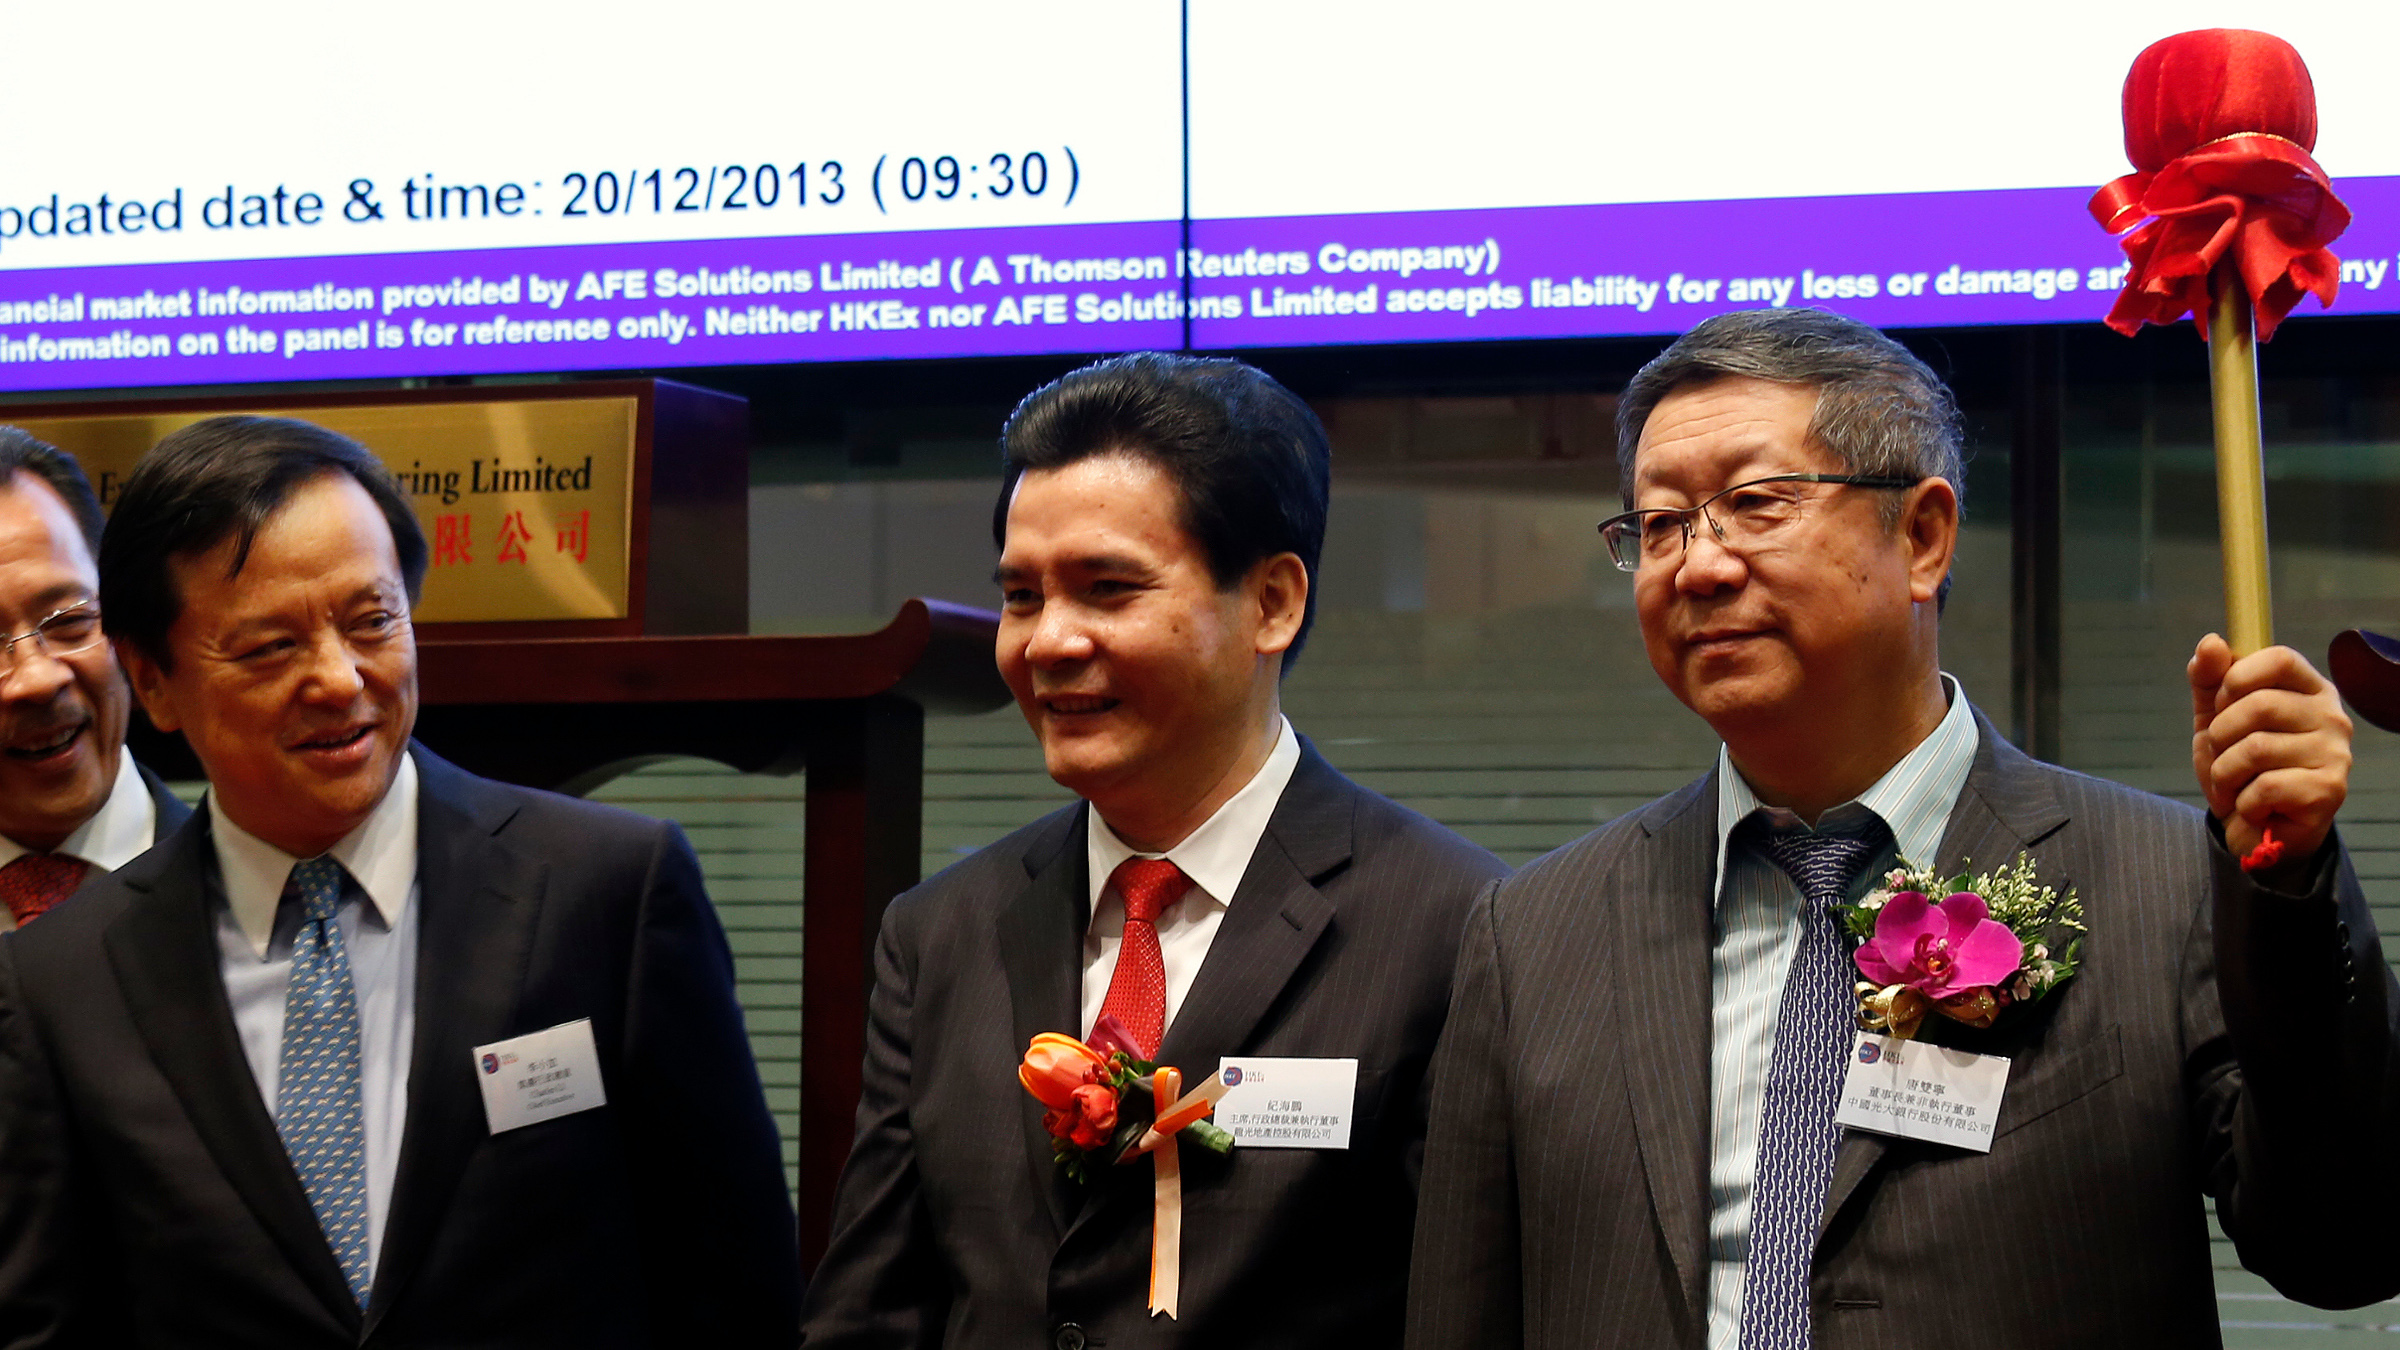 China Everbright Bank's Chairman Tang Shuangning (R) gestures after hitting a gong as Hong Kong Exchange Chief Executive Charles Li (L) looks on during the debut of the bank at the Hong Kong Stock Exchange December 20, 2013. China Everbright Bank Co Ltd is set to fall 0.8 percent in its Hong Kong trading debut on Friday, after the mid-sized lender raised $3 billion in a share offering priced near the bottom of expectations. Standing between them is Logan Property Holdings' Chairman Ji Haipeng, whose company also debut on Friday.